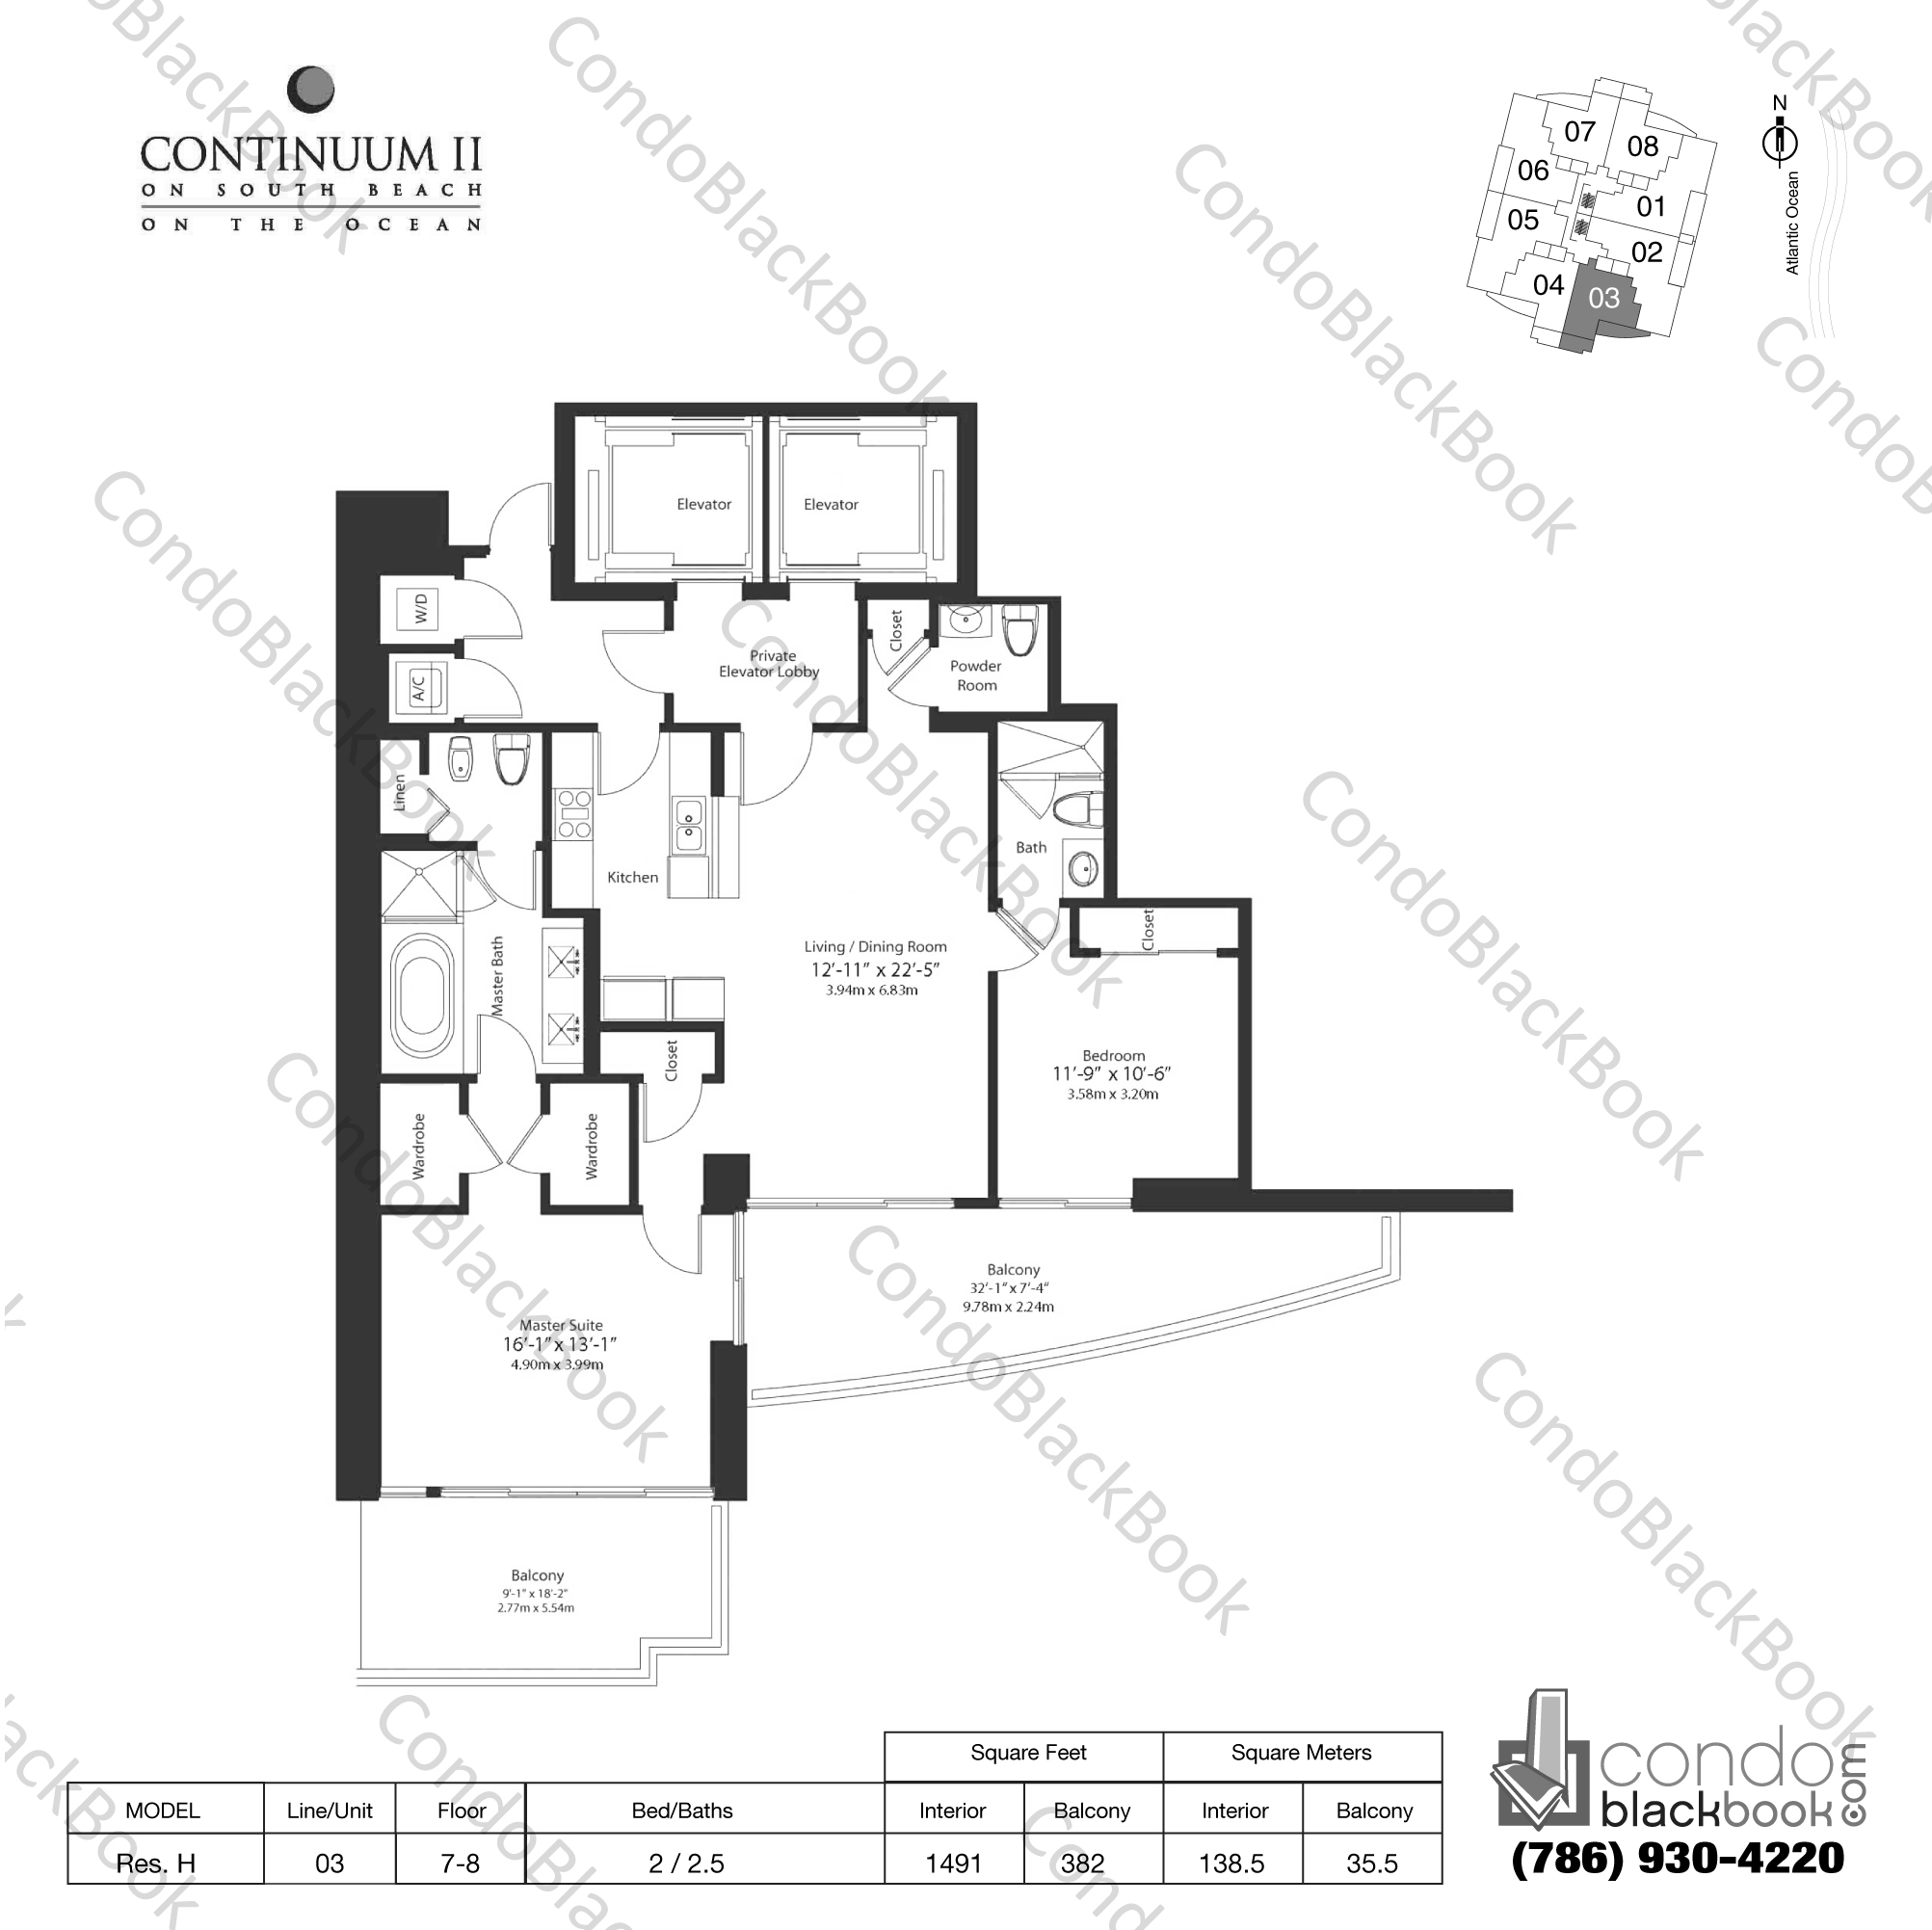 Floor plan for Continuum II North South Beach Miami Beach, model Res. H, line 03, 2 / 2.5 bedrooms, 1491 sq ft